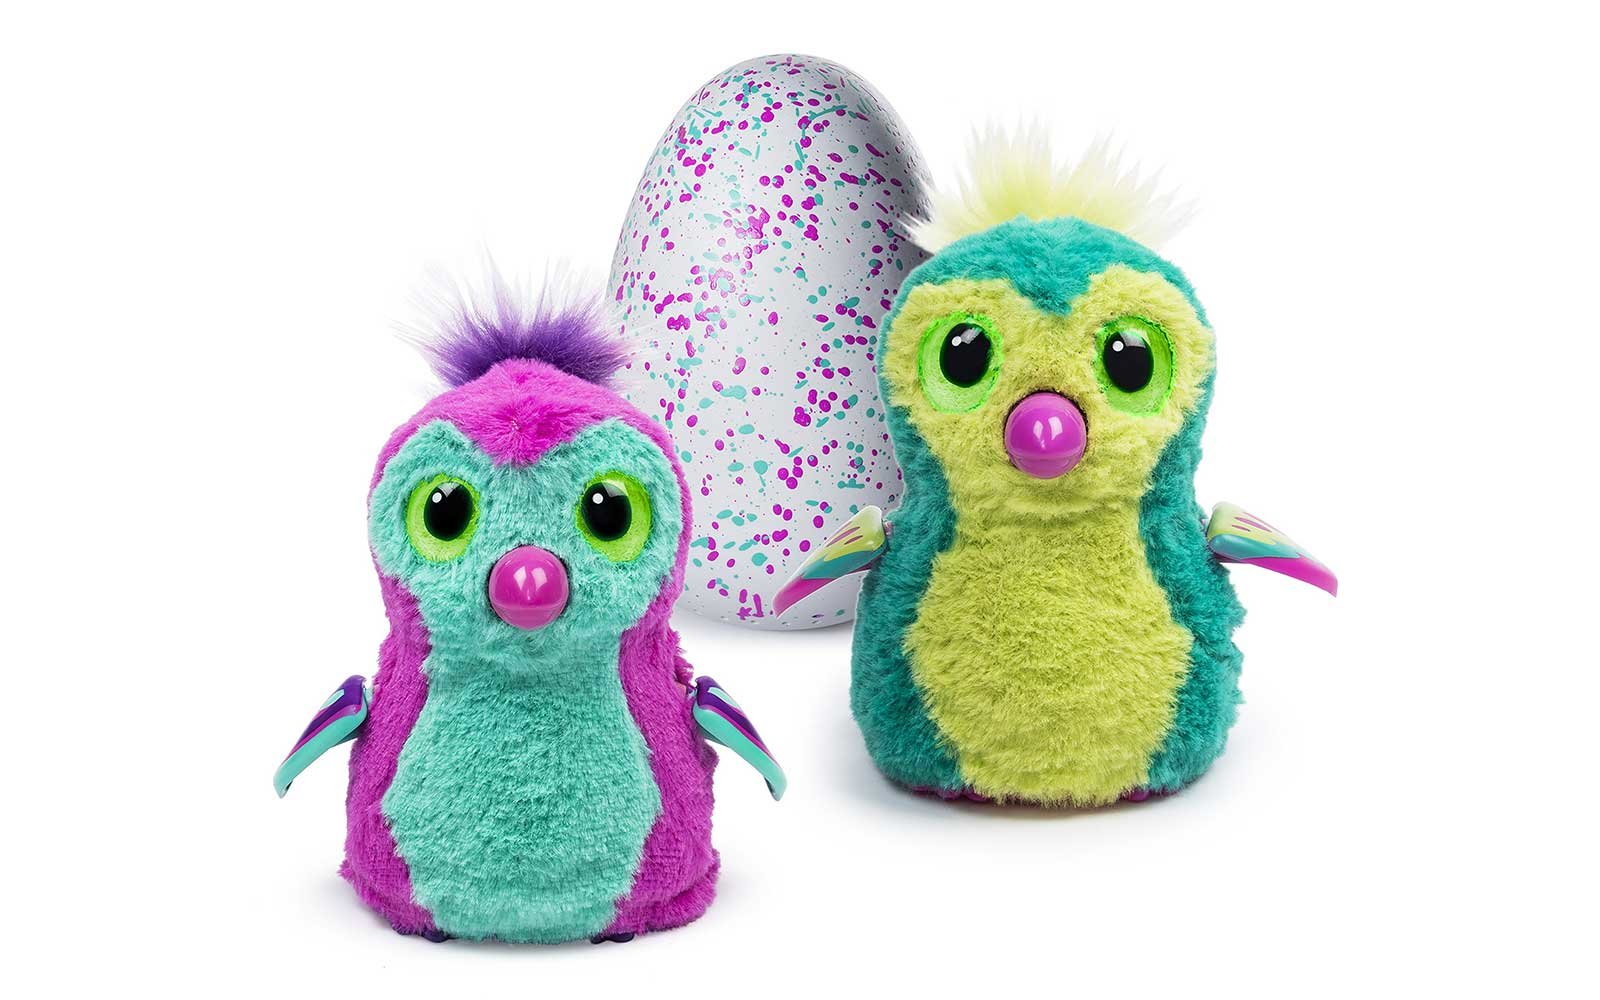 Where to Find the New Hatchimals